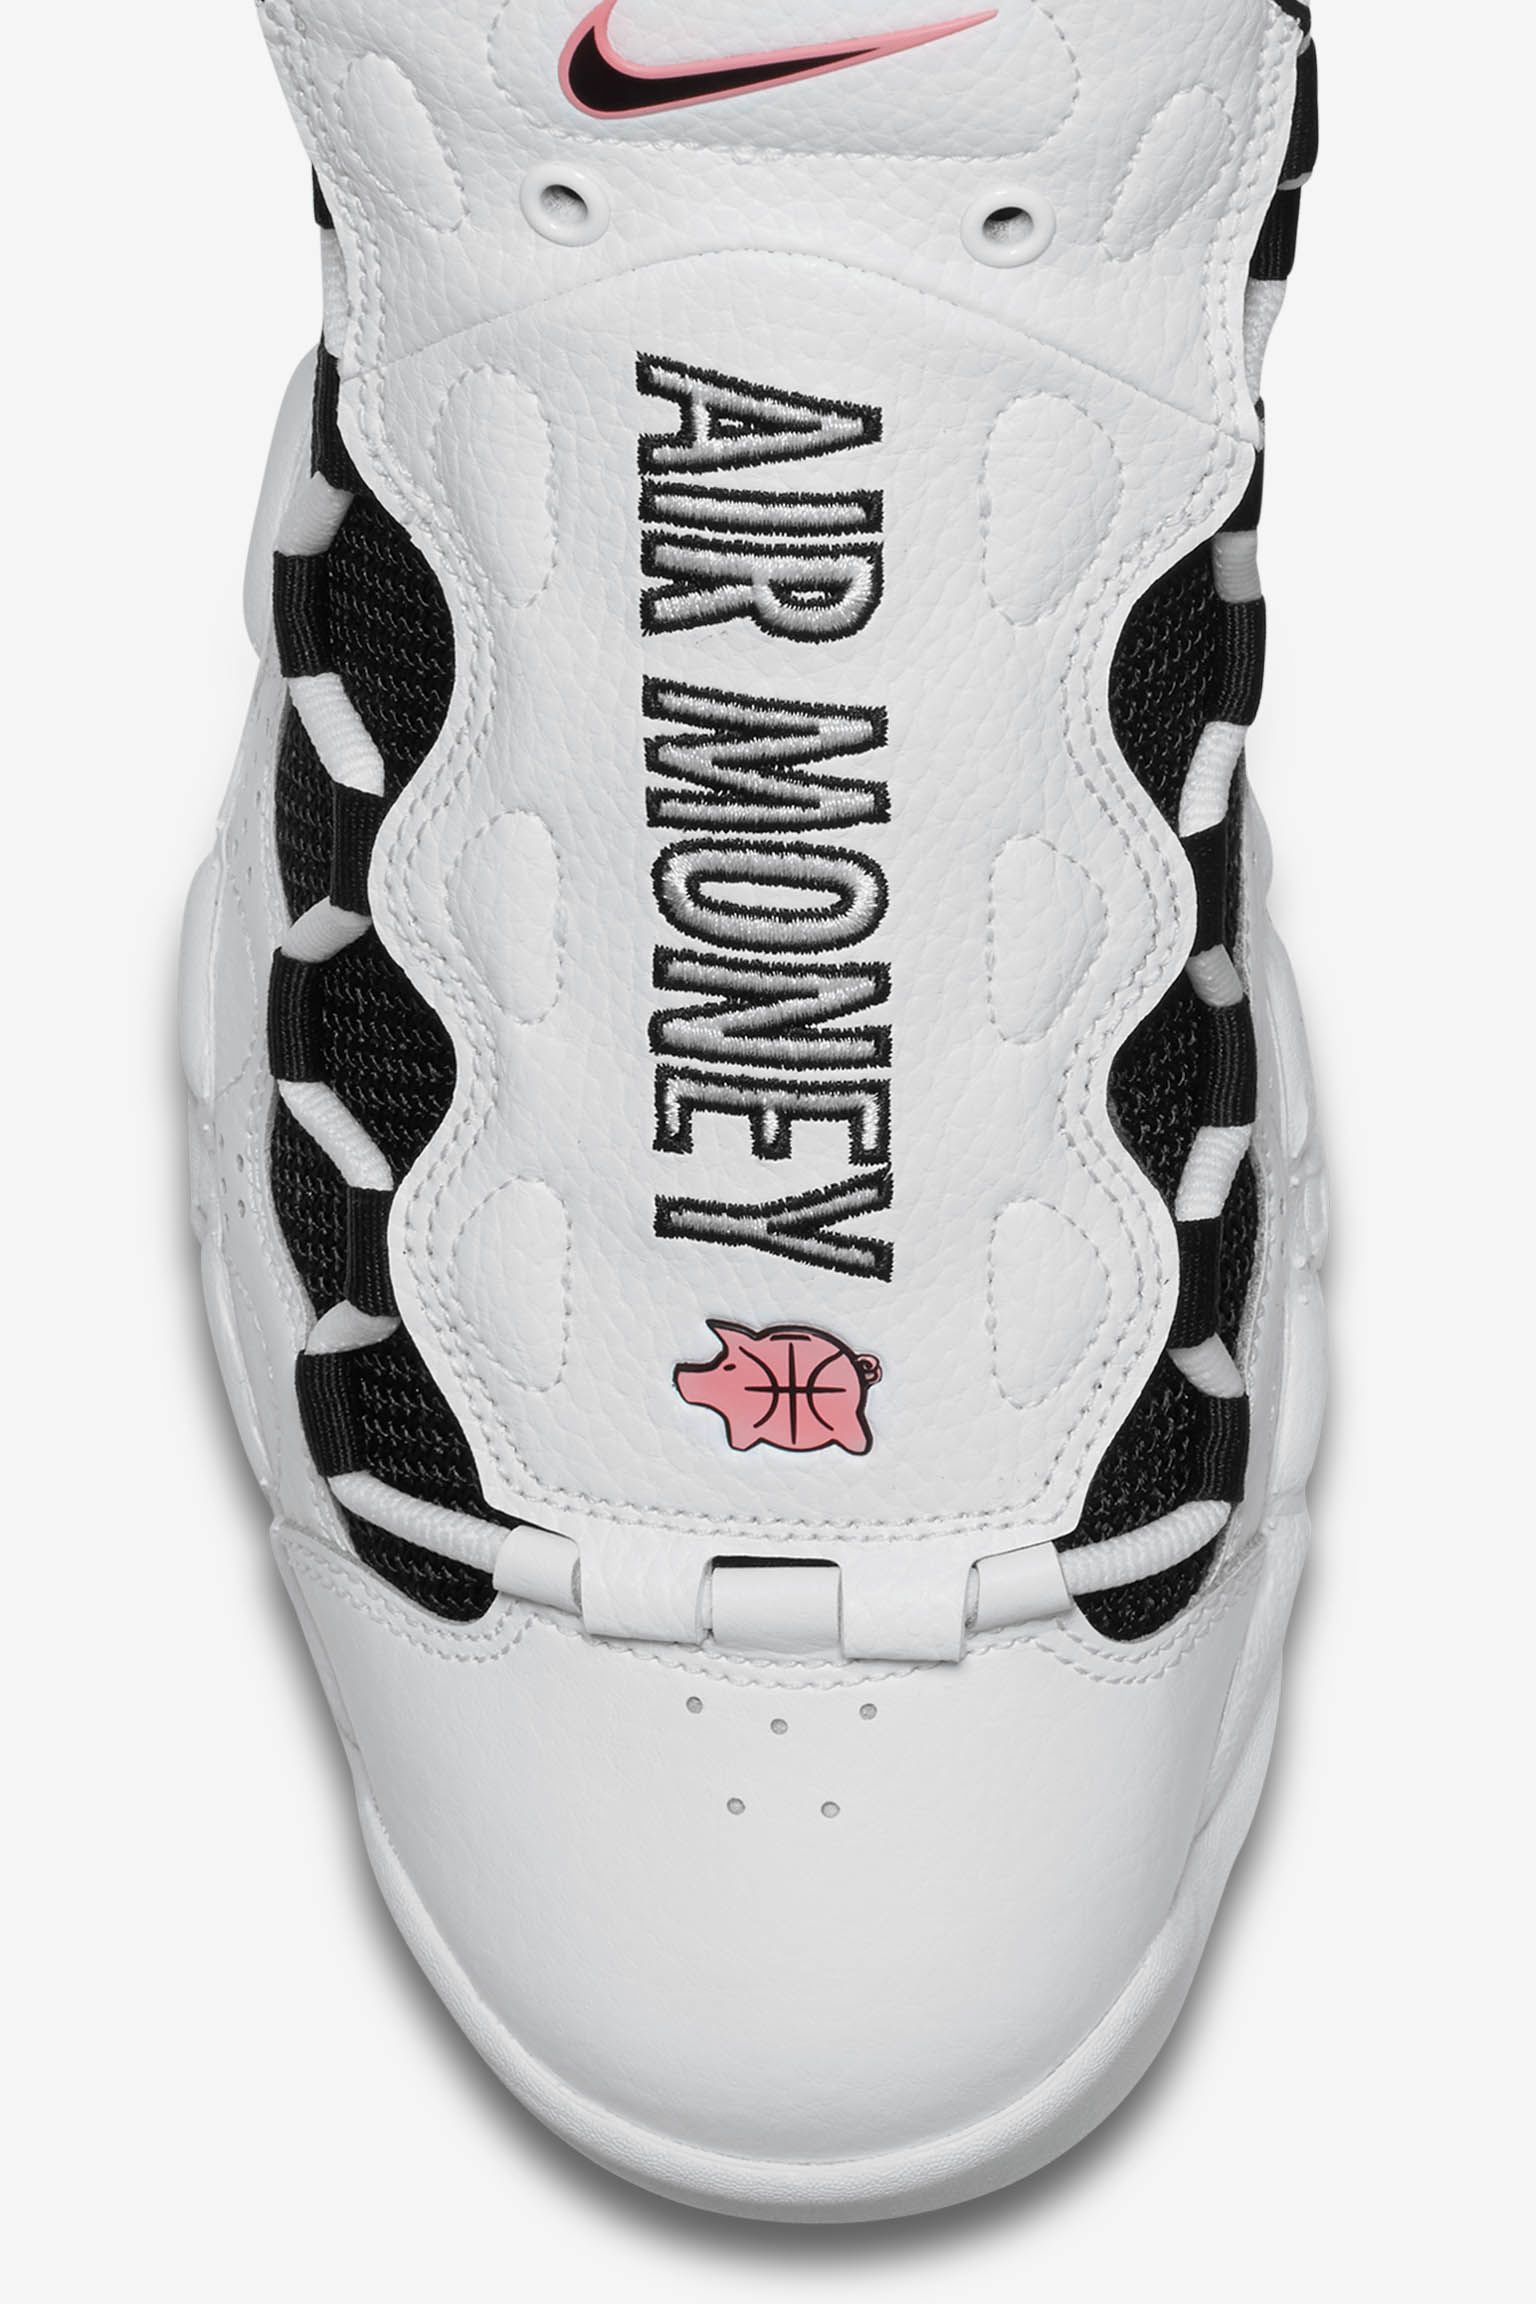 Nike Air More Money 'White & Black & Coral Chalk' Release Date